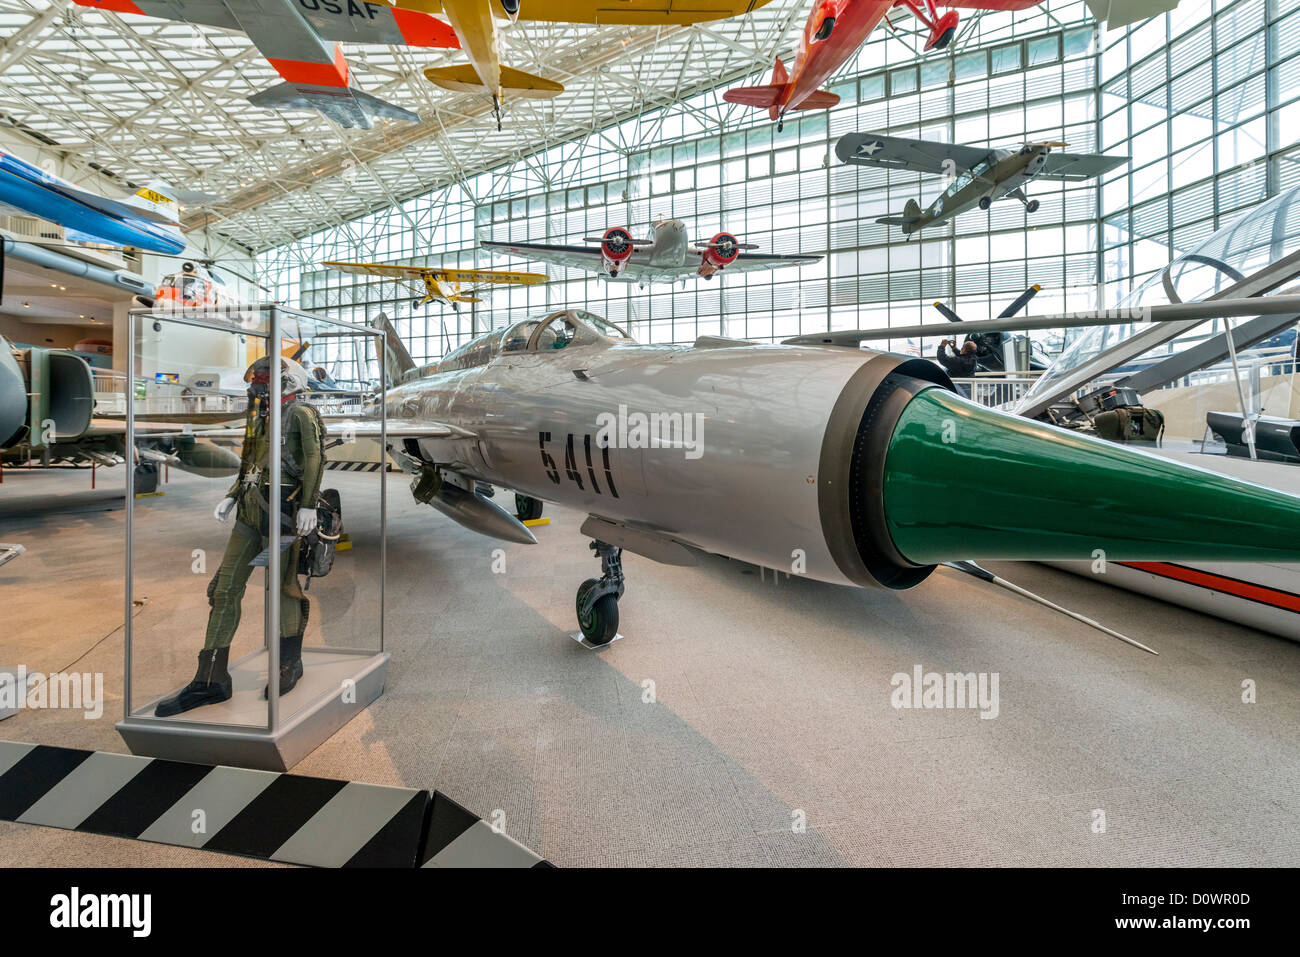 A 1967 Mikoyan-Gurevich MiG-21 PFM fighter aircraft, The Great Gallery, Museum of Flight, Seattle, Washington, USA - Stock Image